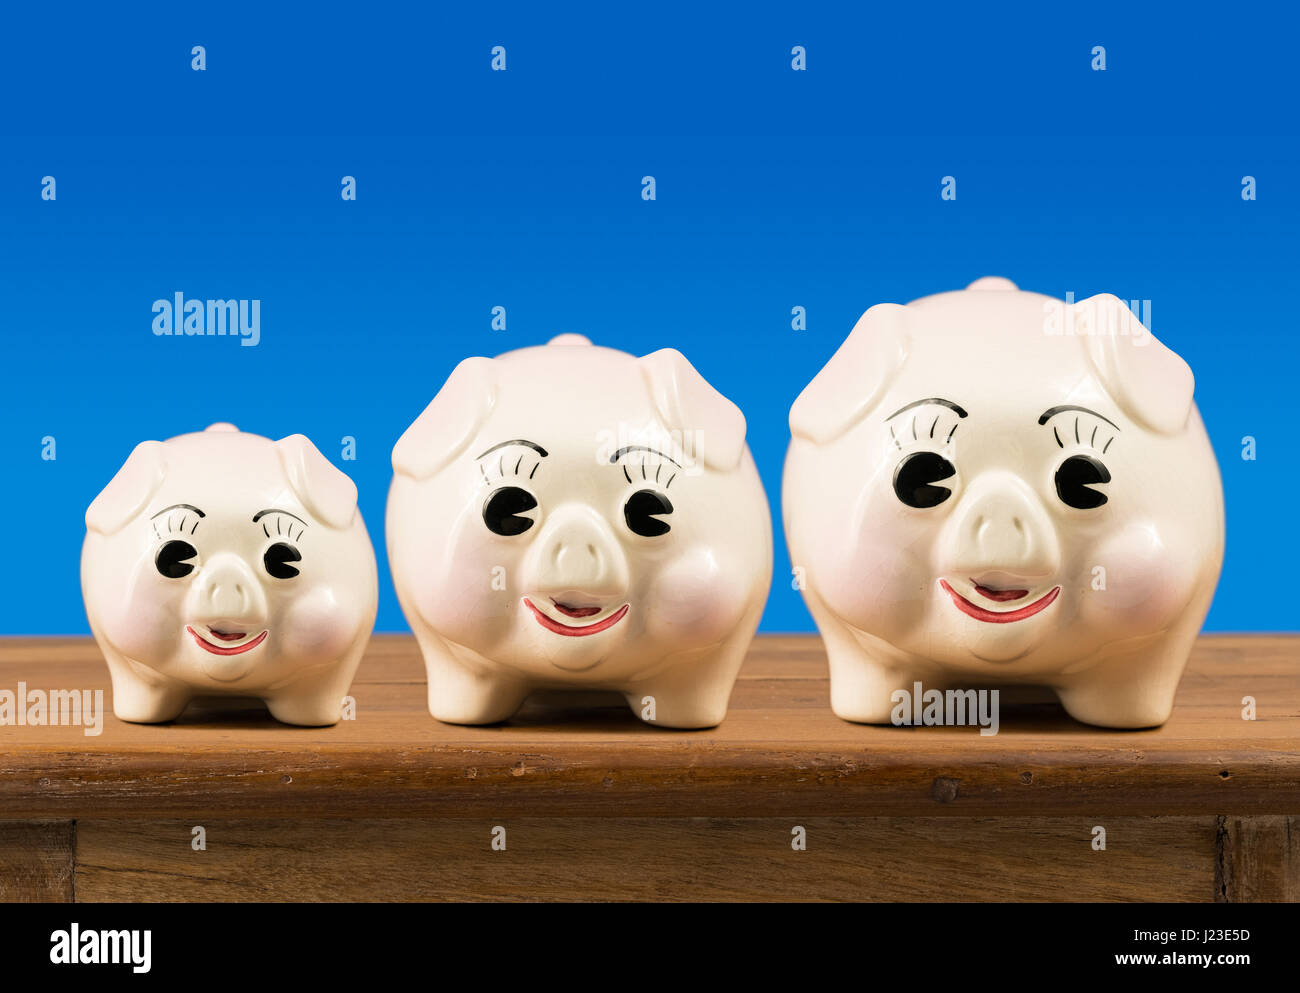 Three piggy banks growing in size in a row - Stock Image